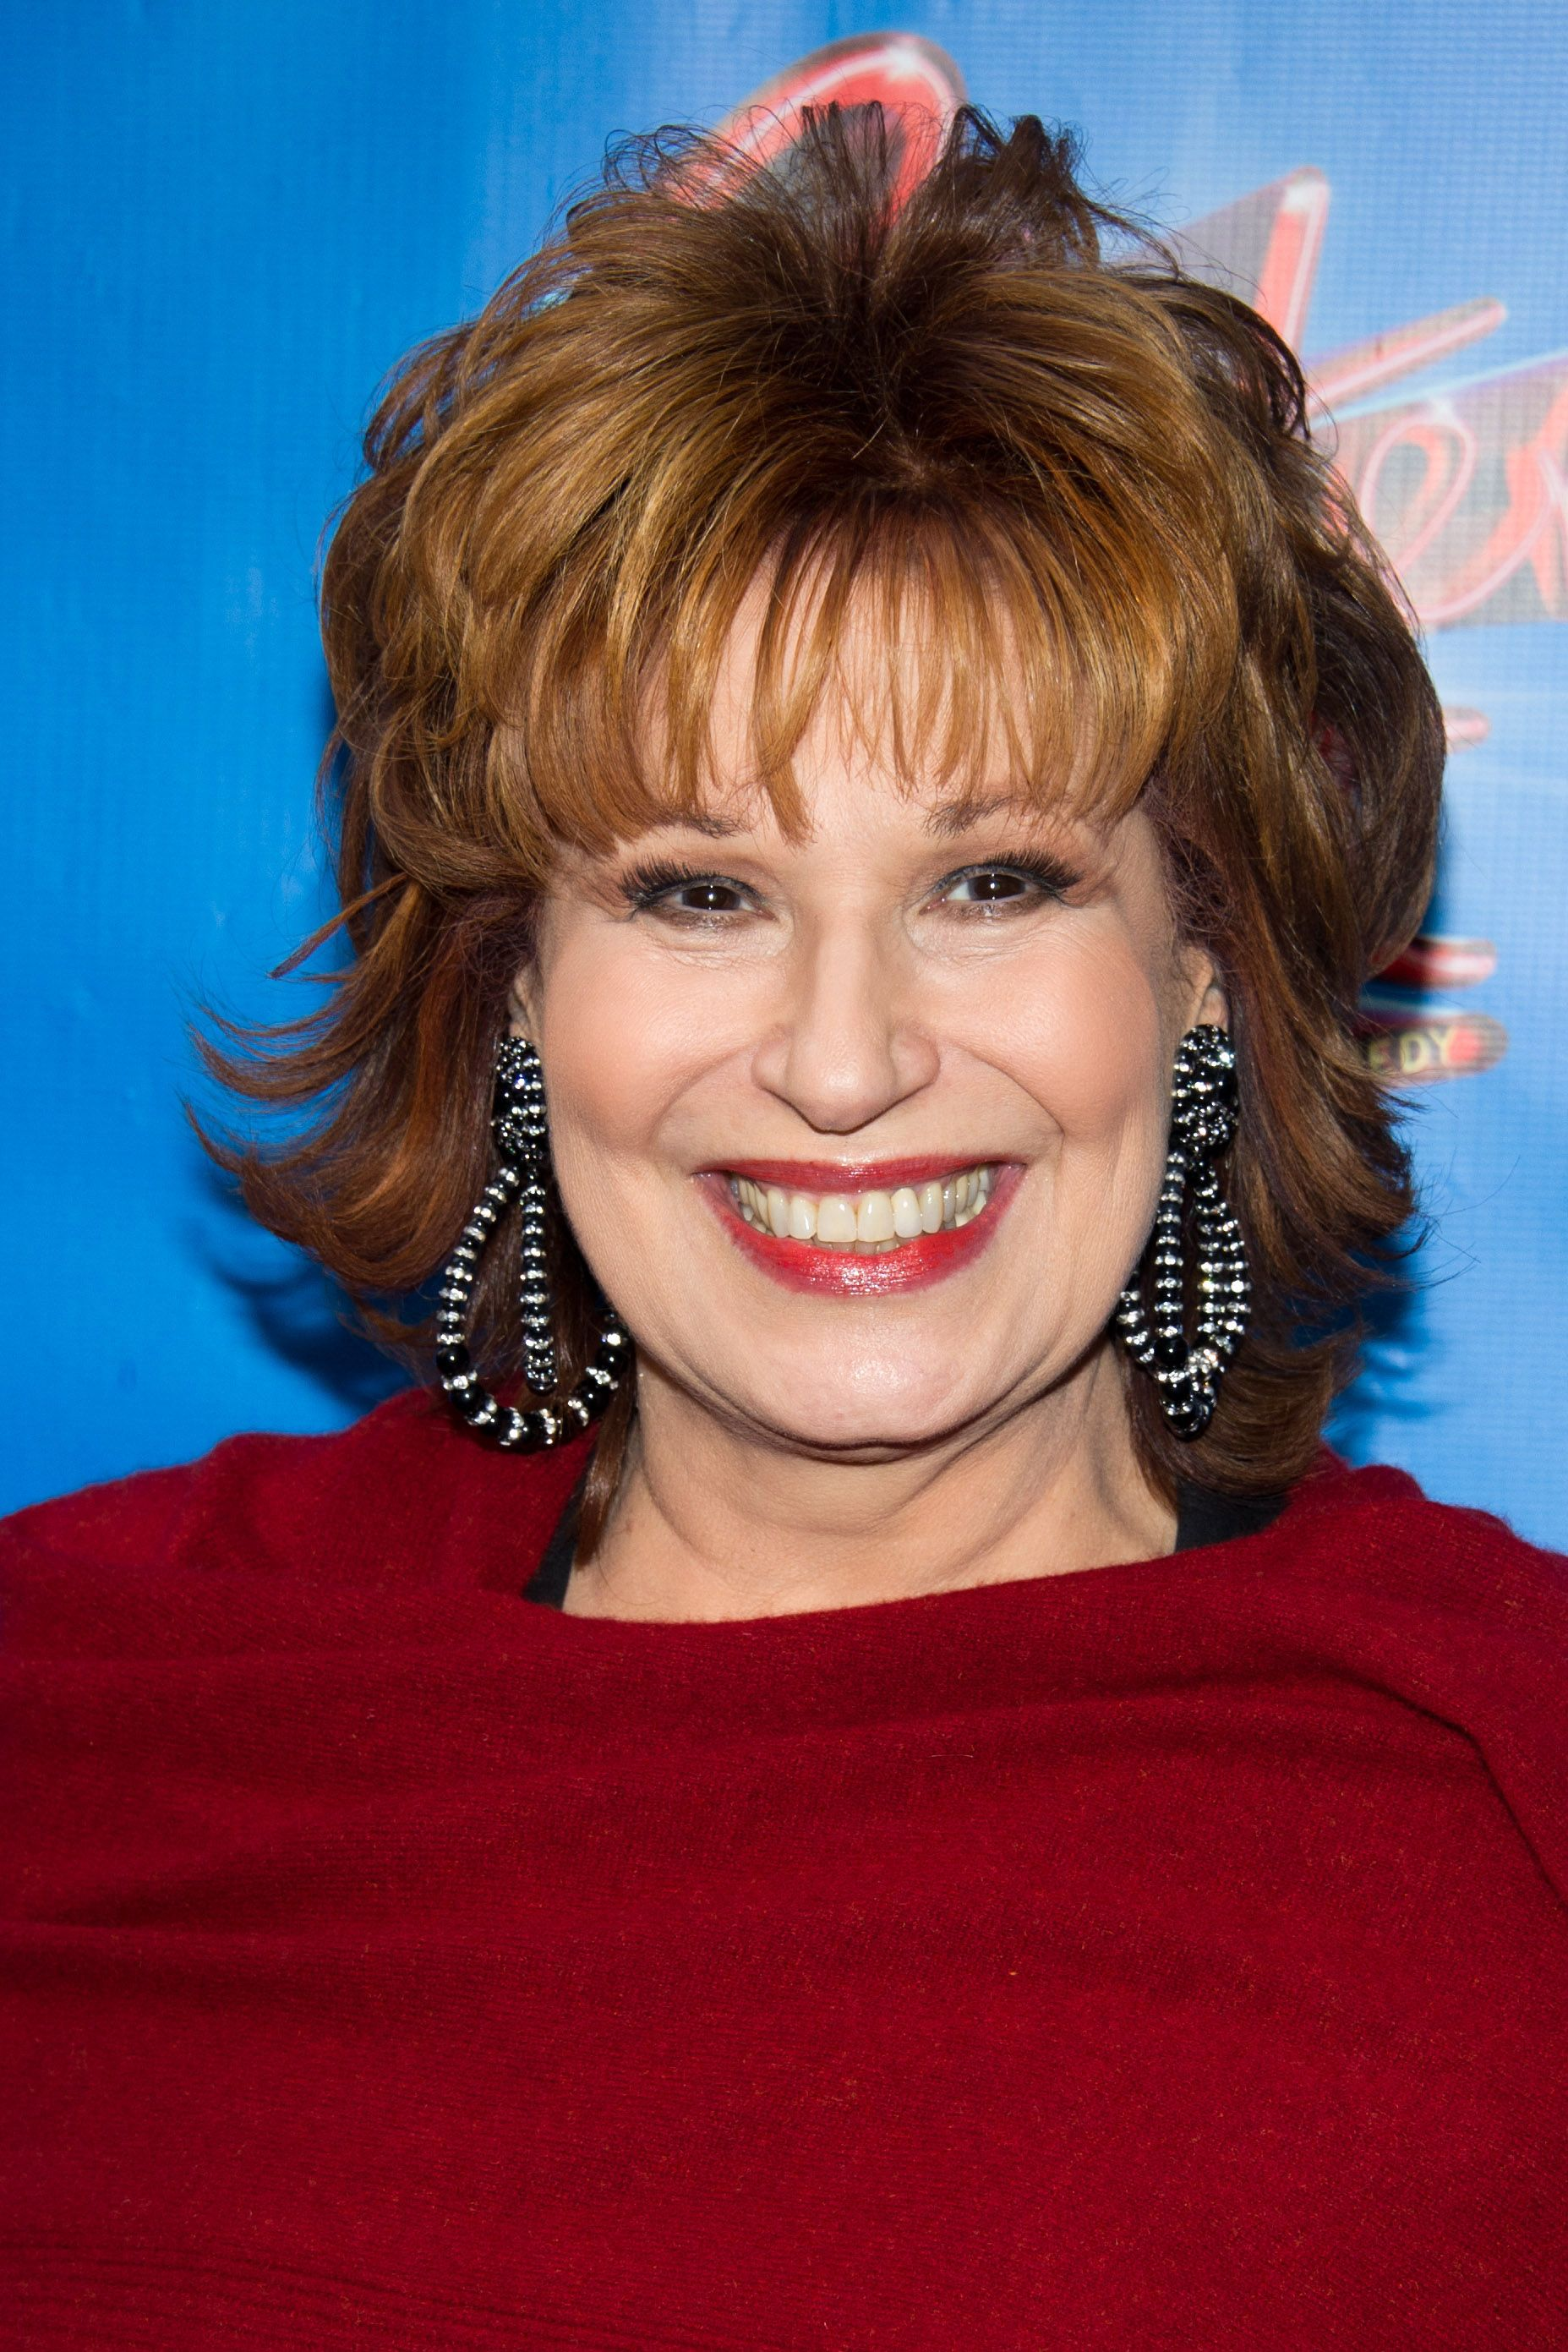 joy beharjoy behar husband, joy behar instagram, joy behar, joy behar age, joy behar show, joy behar nurse, joy behar apology, joy behar twitter, joy behar net worth, joy behar lasagna recipe, joy behar apology to nurses, joy behar back on the view, joy behar husband photos, joy behar daughter, joy behar stethoscope, joy behar net worth 2015, joy behar new show, joy behar hairstyle, joy behar apologizes, joy behar salary